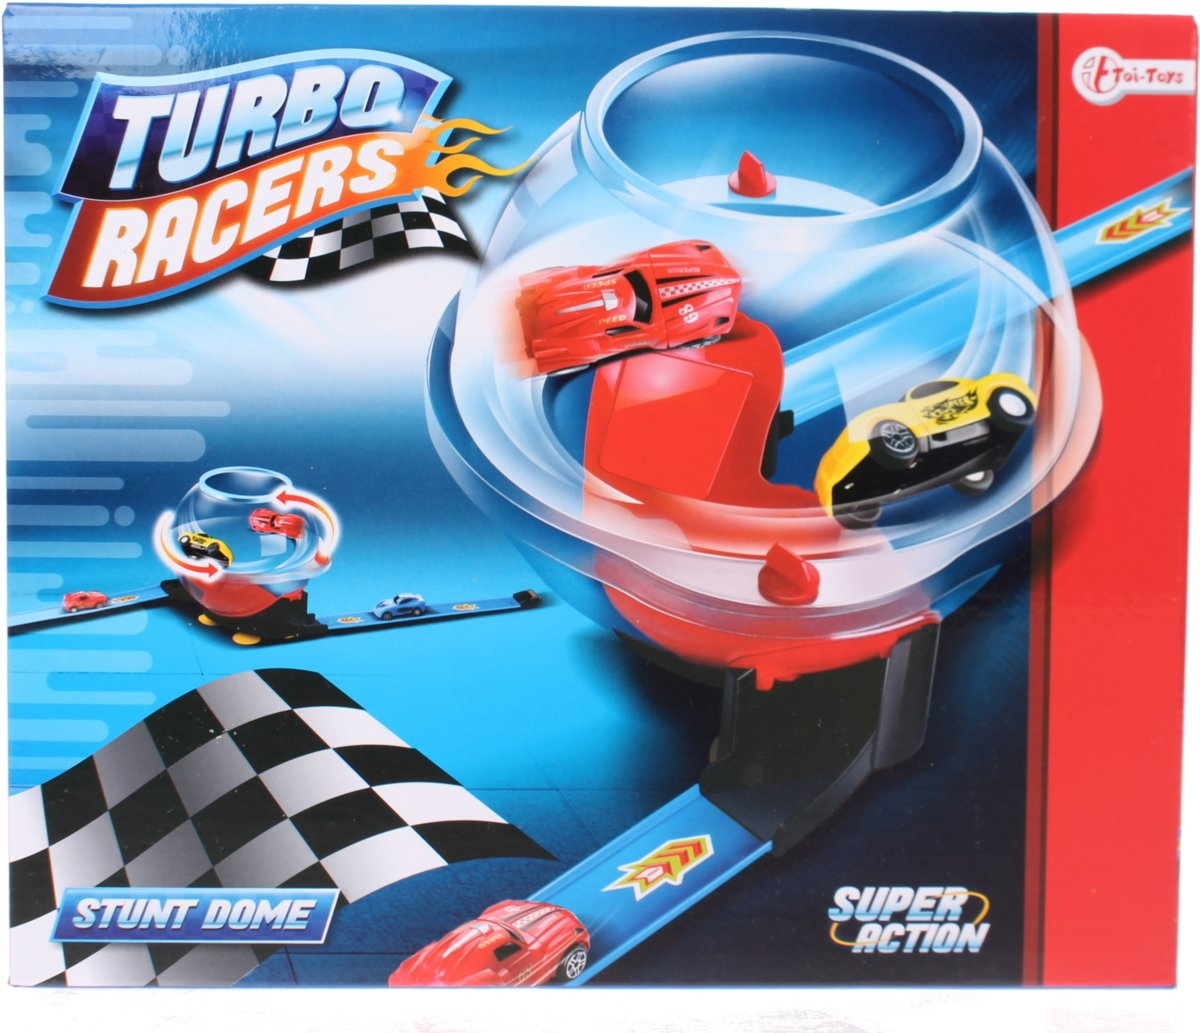 Toi-toys   Stunt Dome Turbo Racers